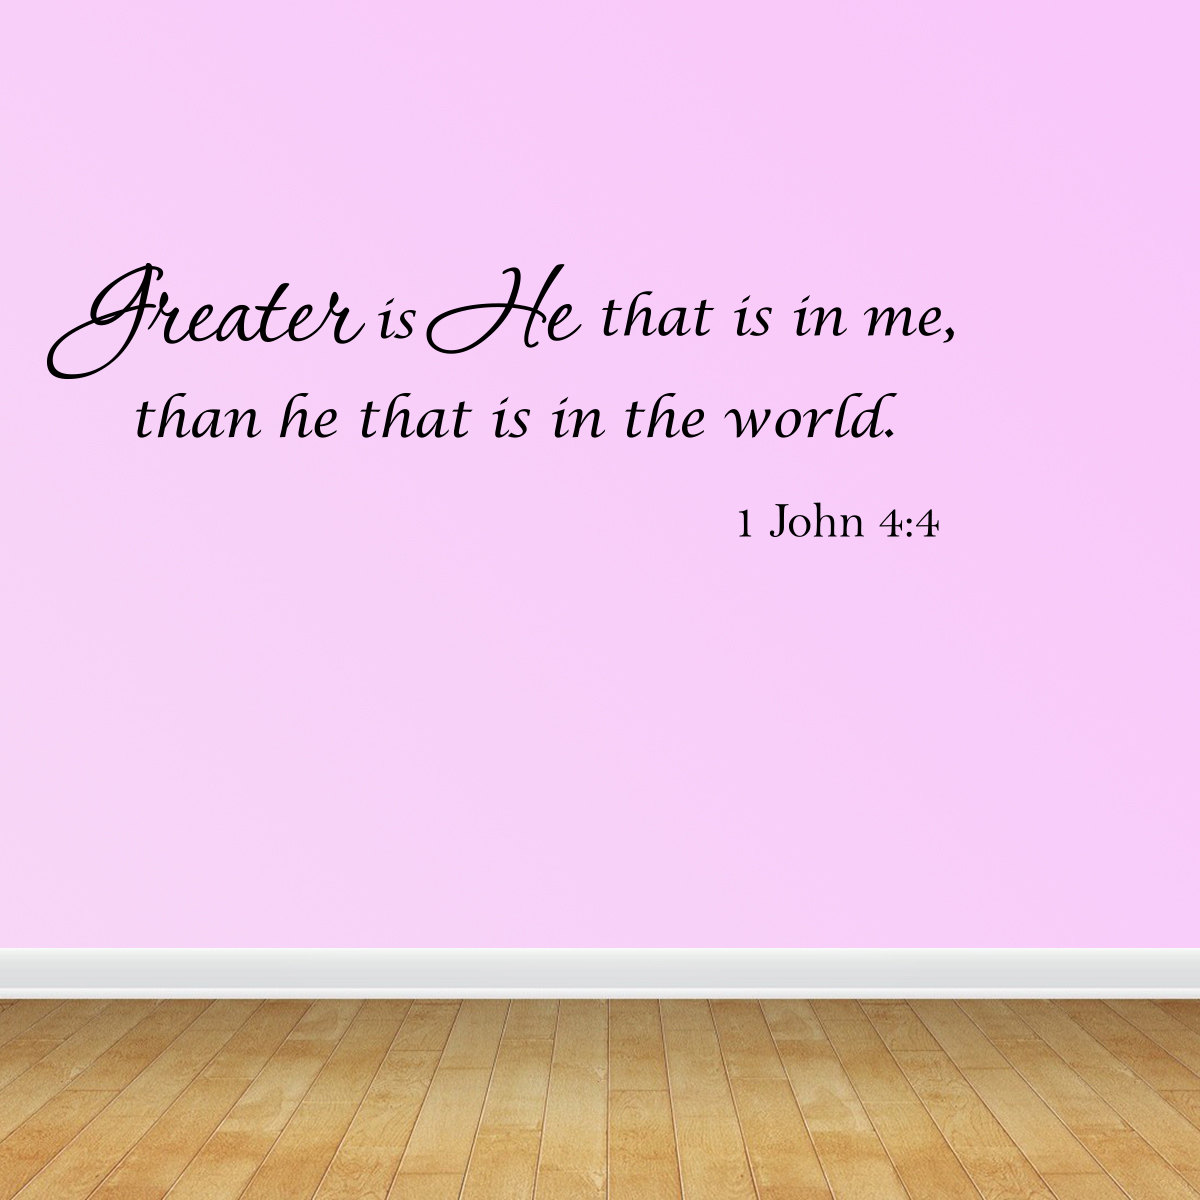 Wall Decal Quote Greater Is He That Is In Me Than He That Is In The World JR536